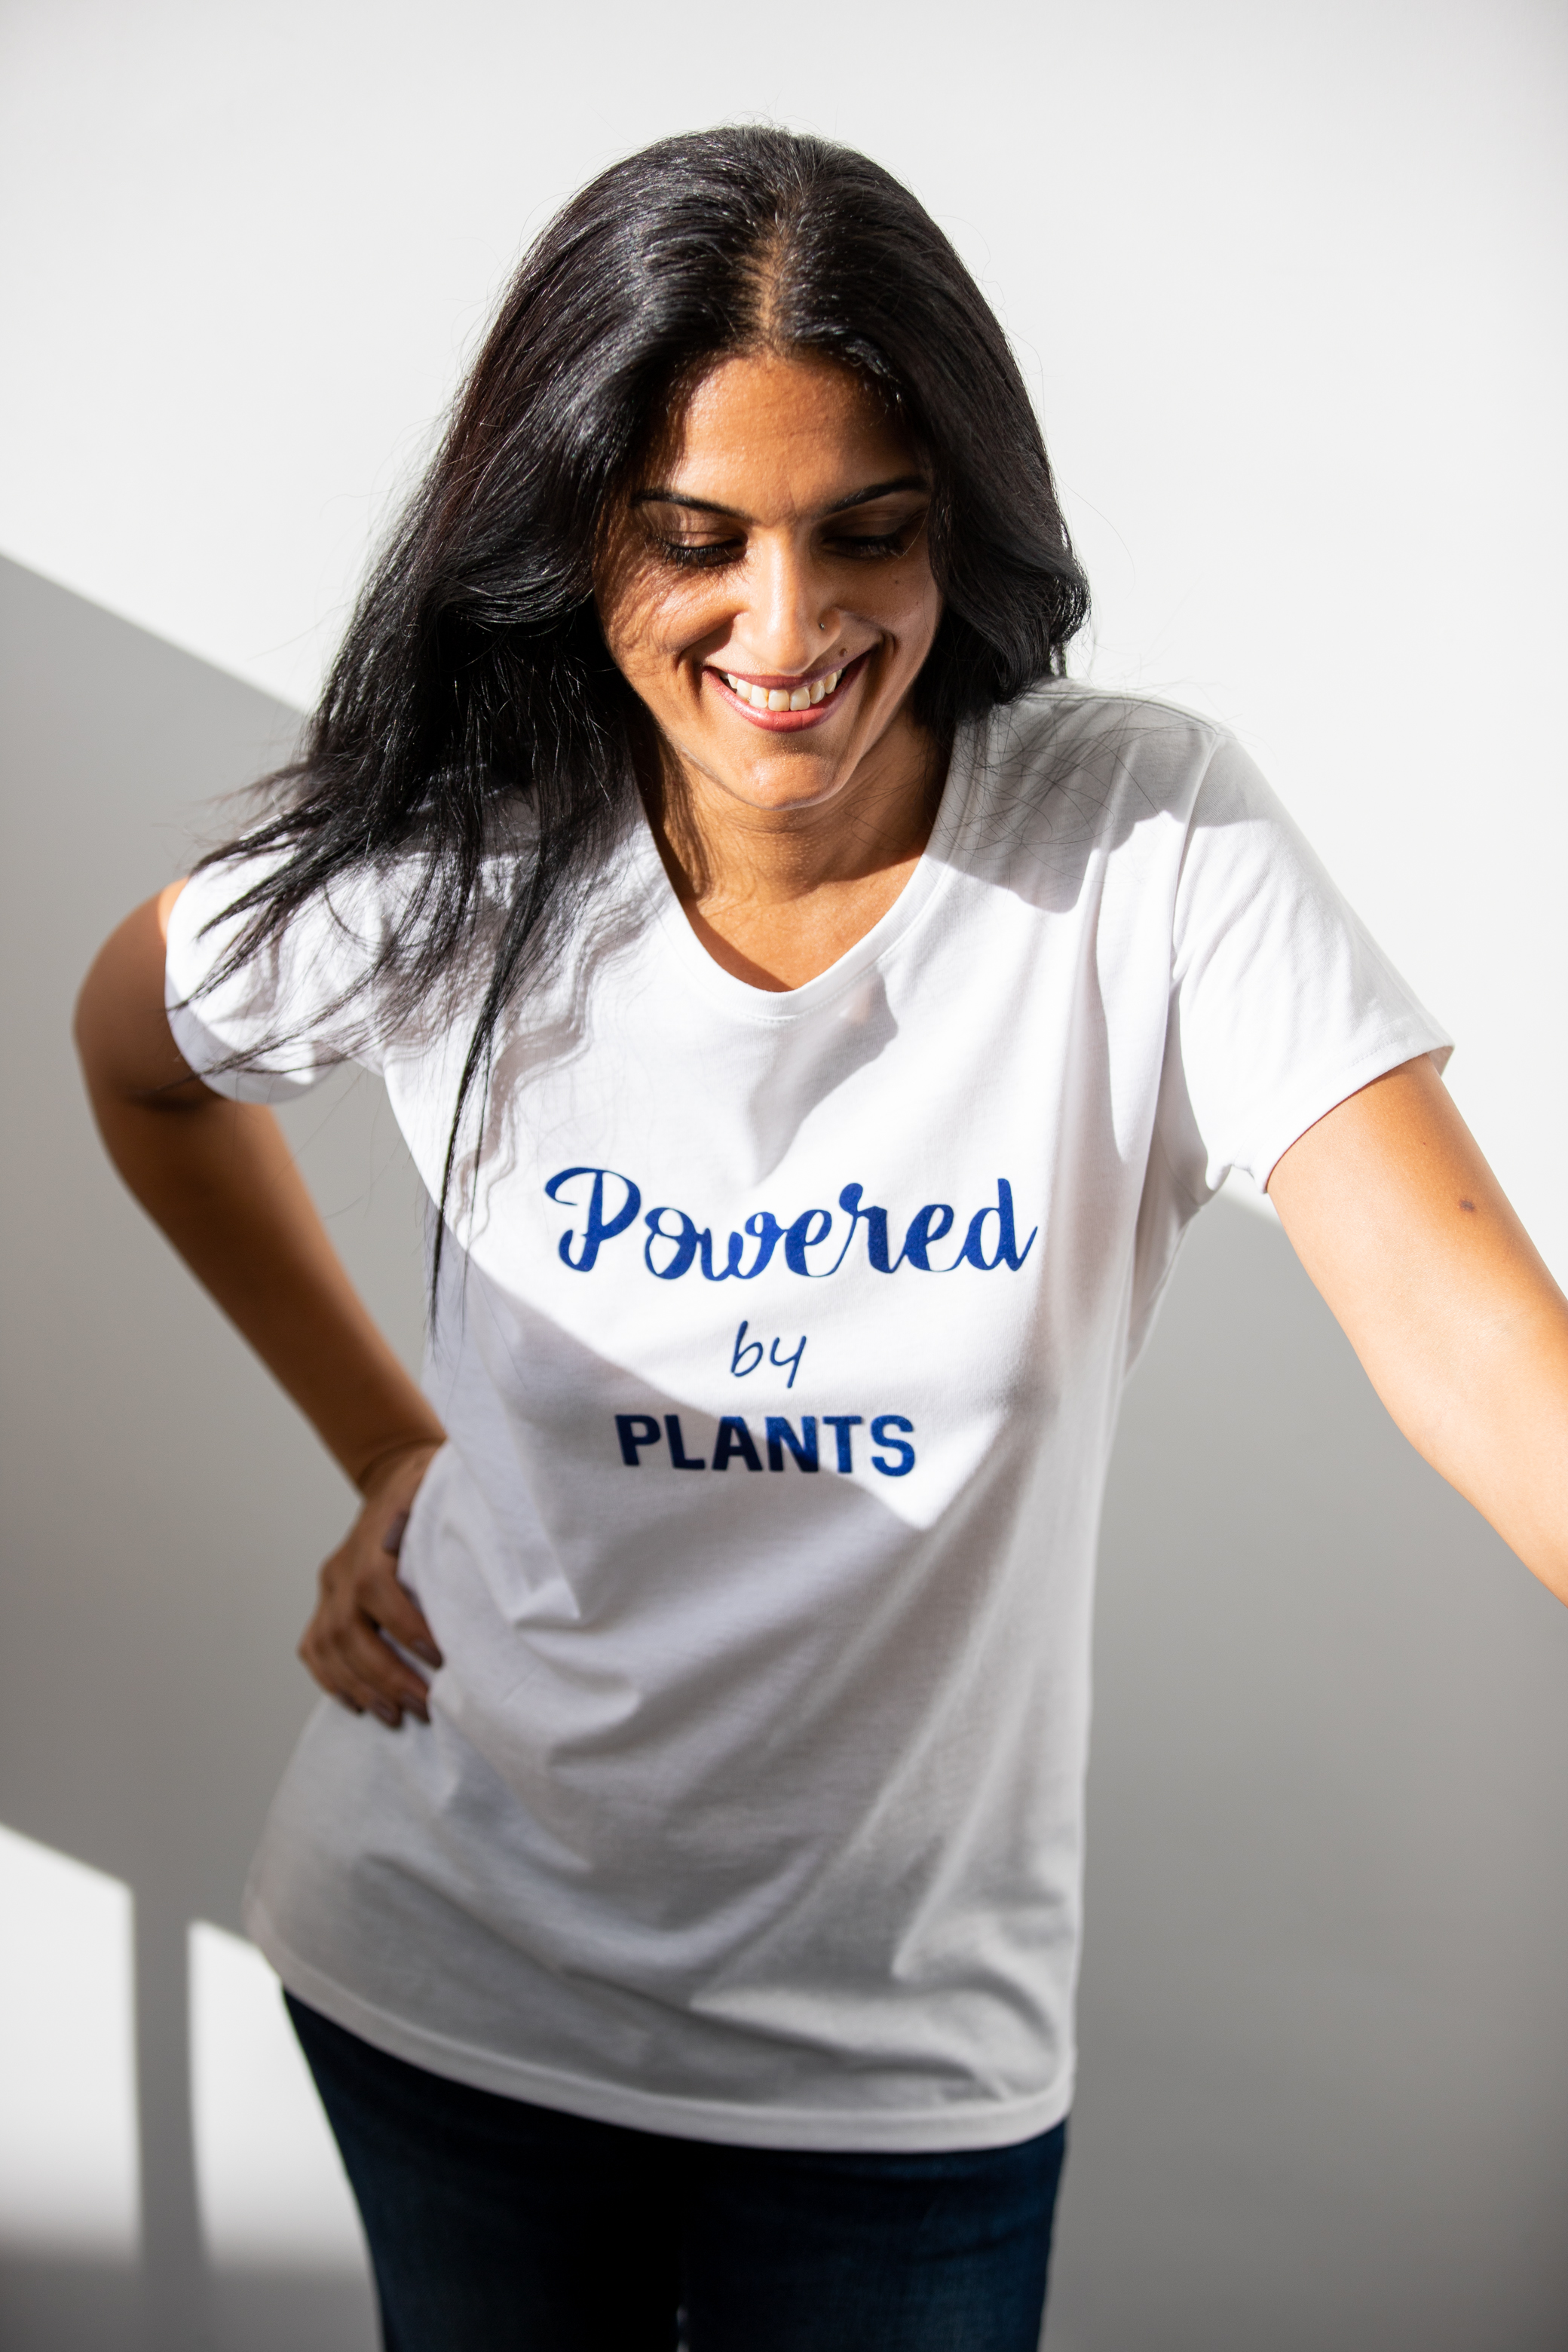 Simple & bold - This tee is by Bee's Mug Shop. I love this particular shade of blue on white, the font, the shape of the t-shirt and the statement that I'm POWERED by plants.